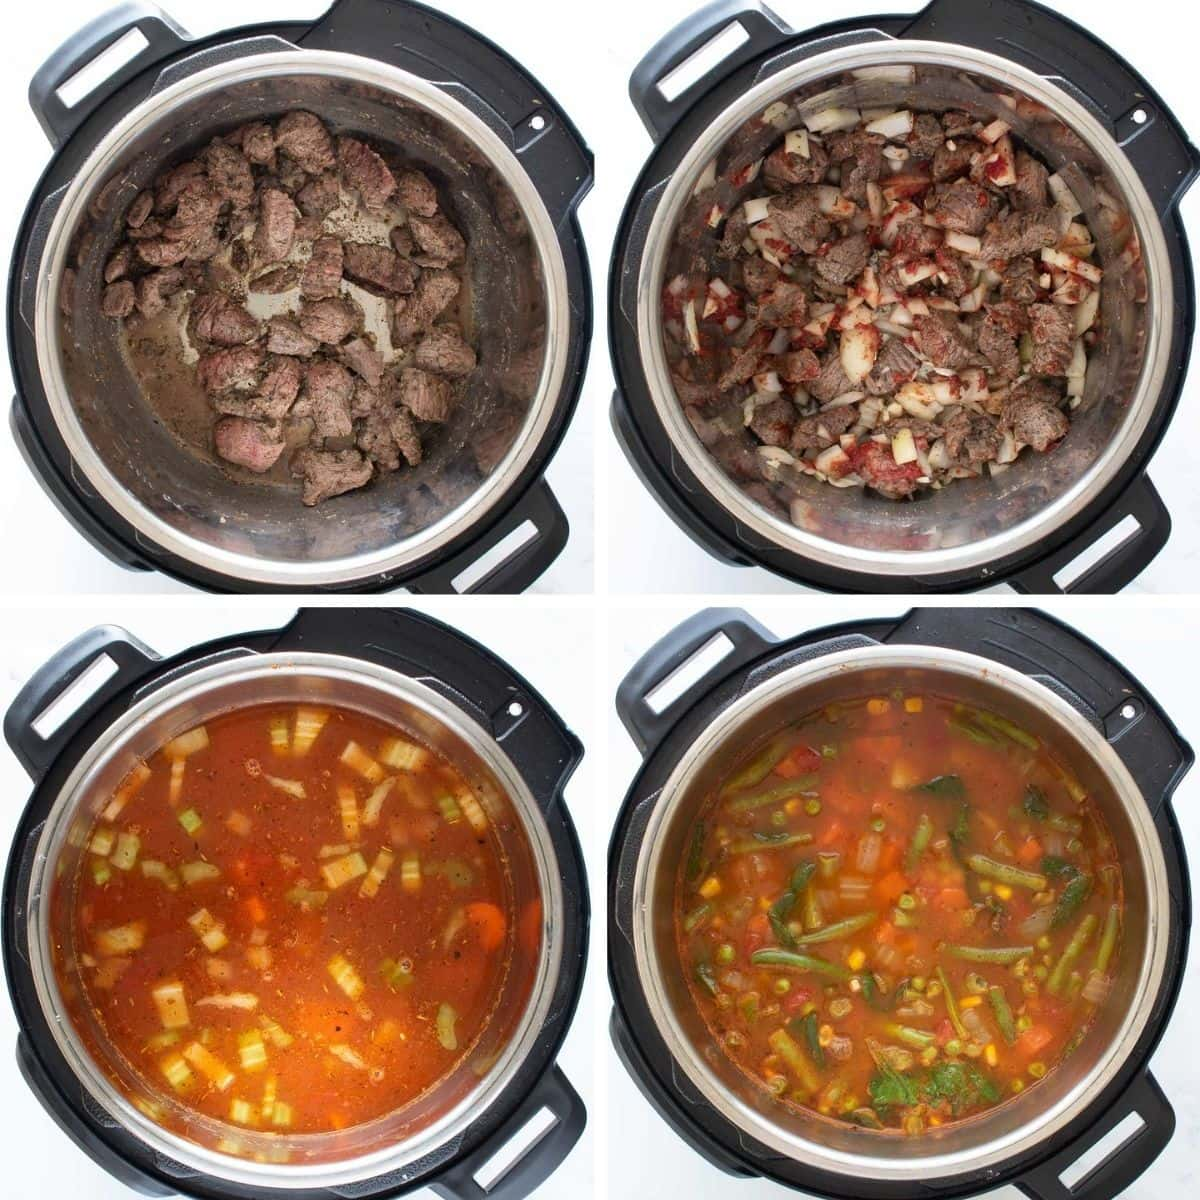 Step by step images showing how to make beef vegetable soup in an Instant Pot.